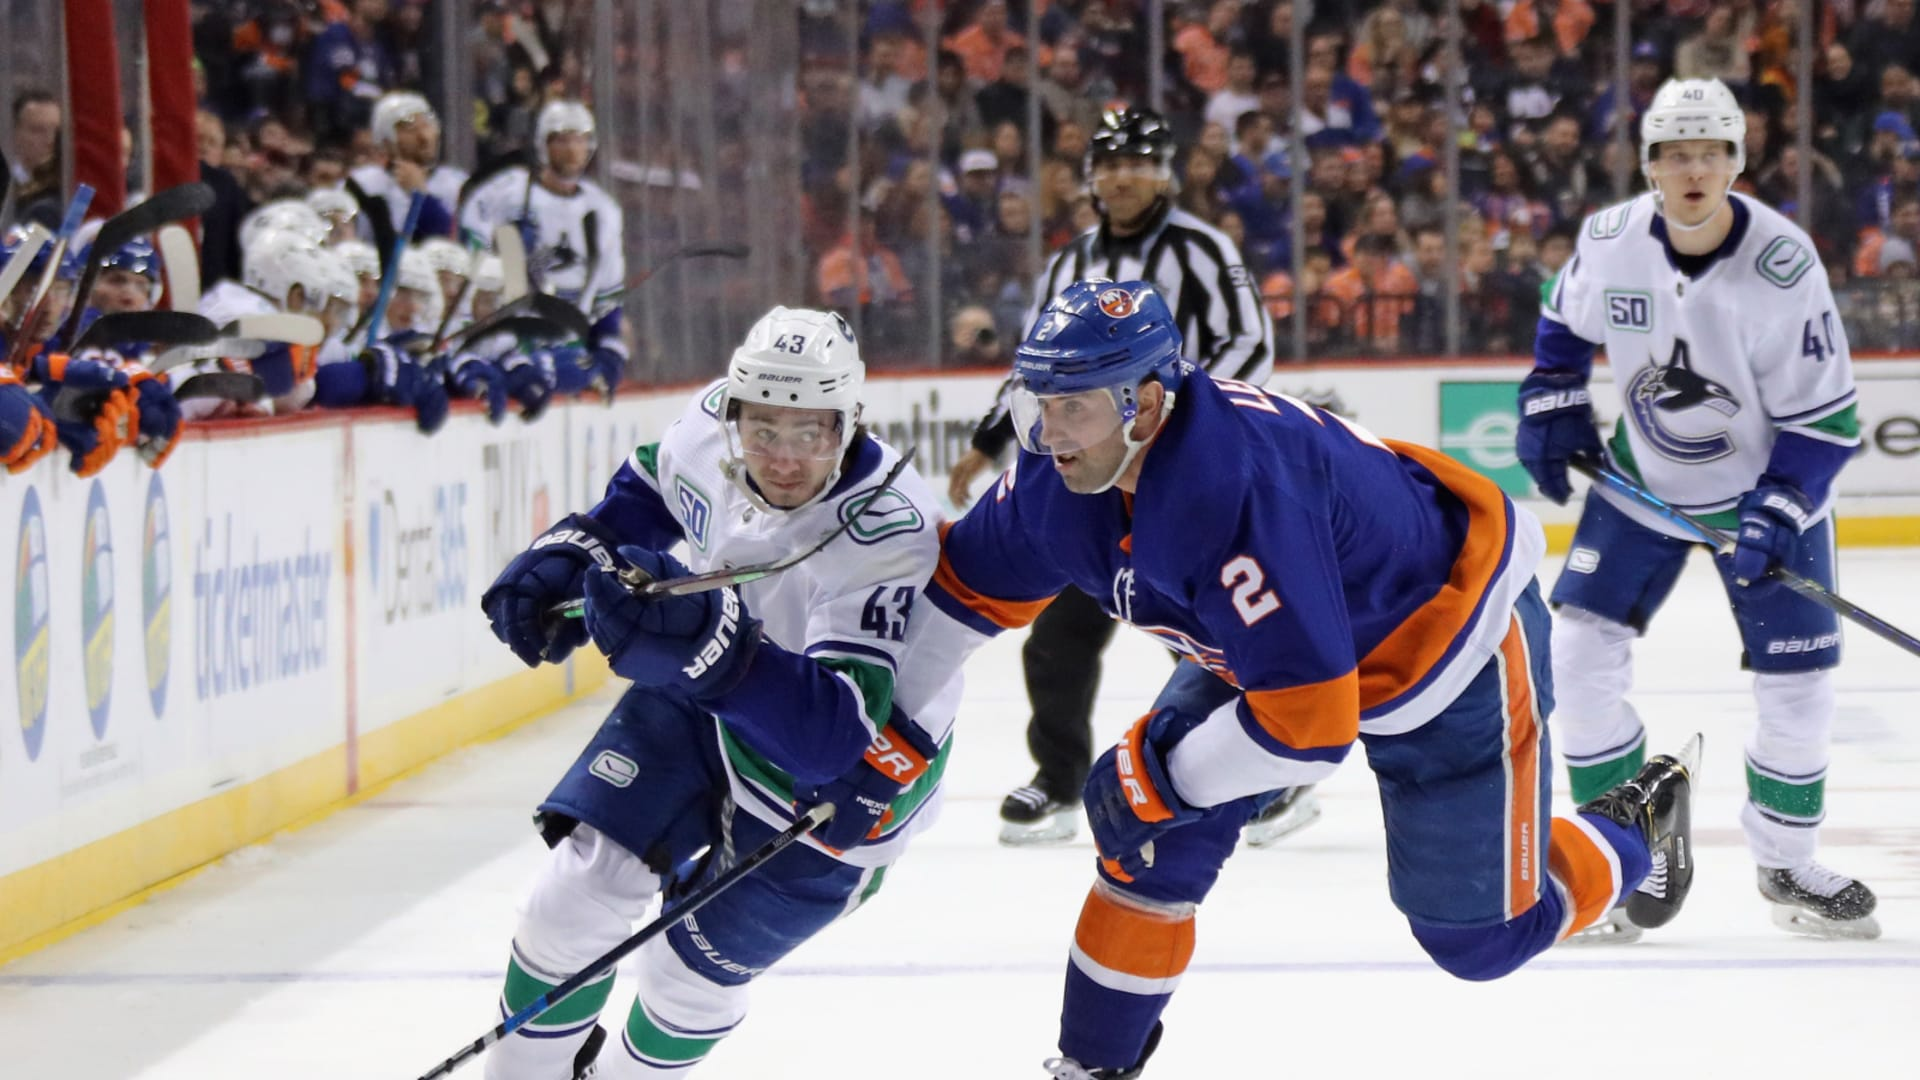 Islanders vs. Canucks: Odds, Players to Watch, Lineups, TV and more